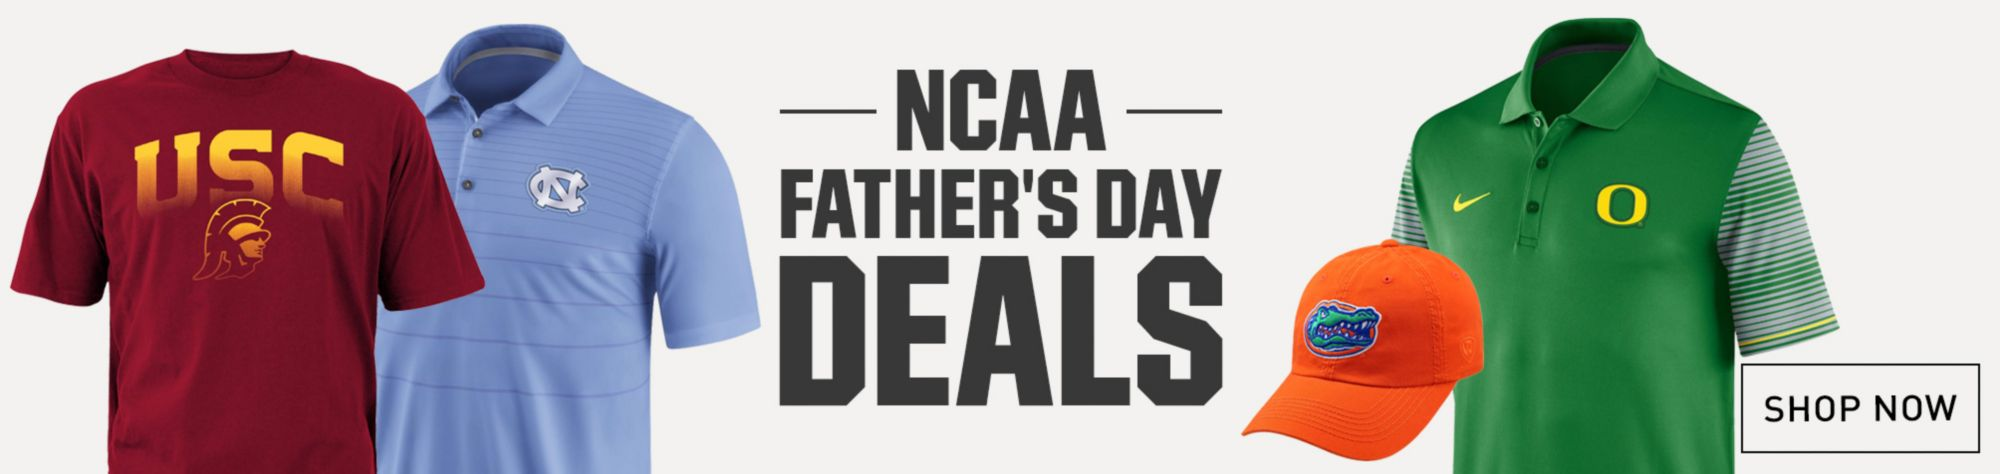 NCAA Fathers Day Deals